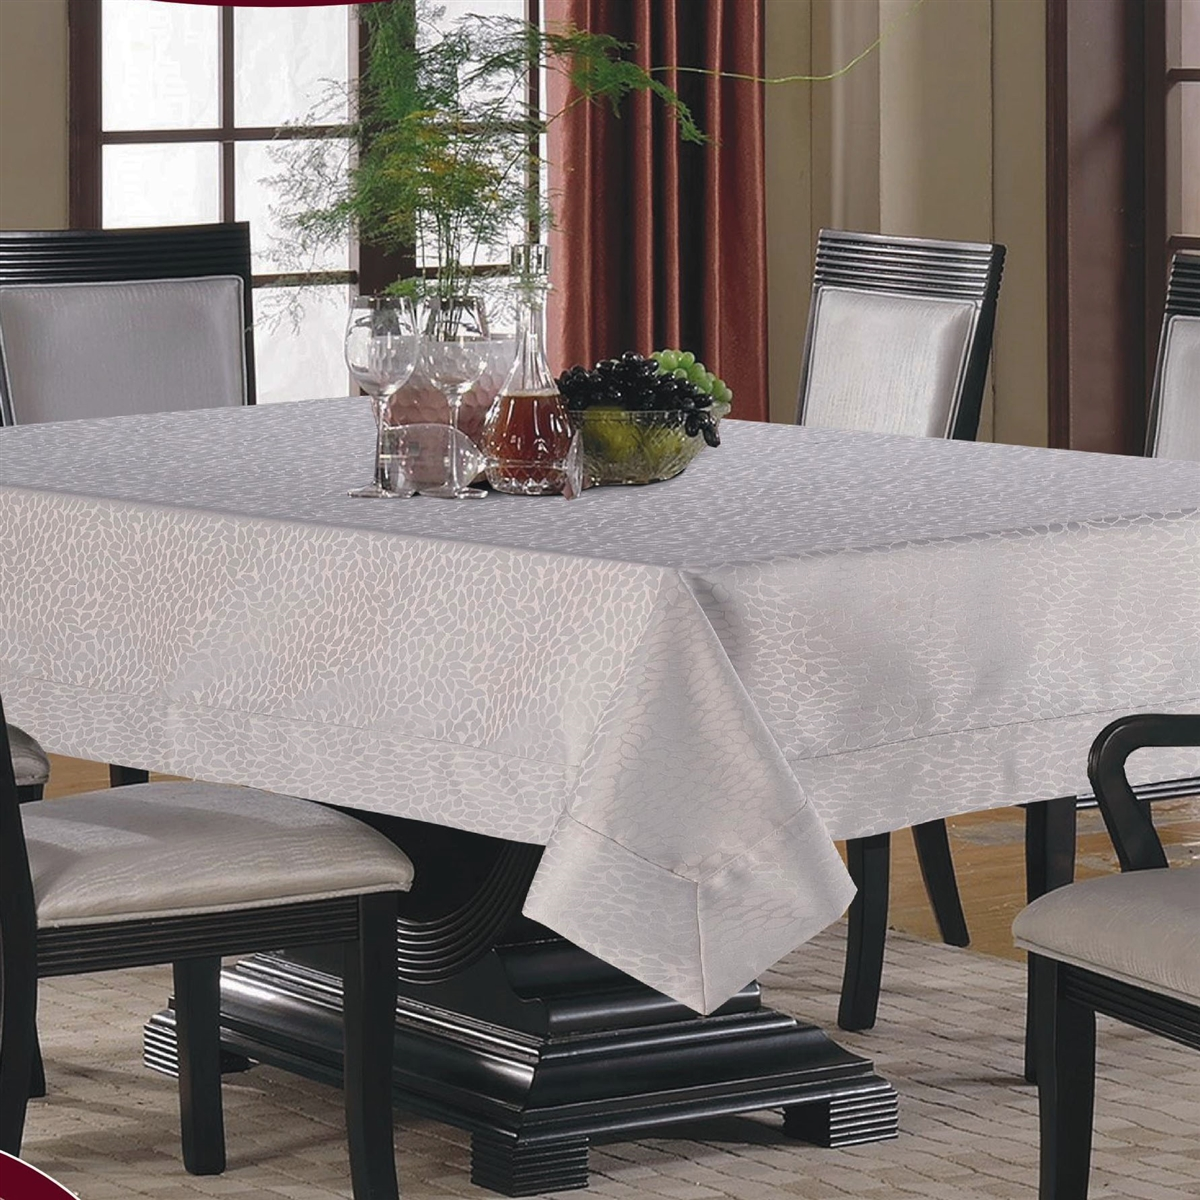 Belair Spill Proof Tablecloth